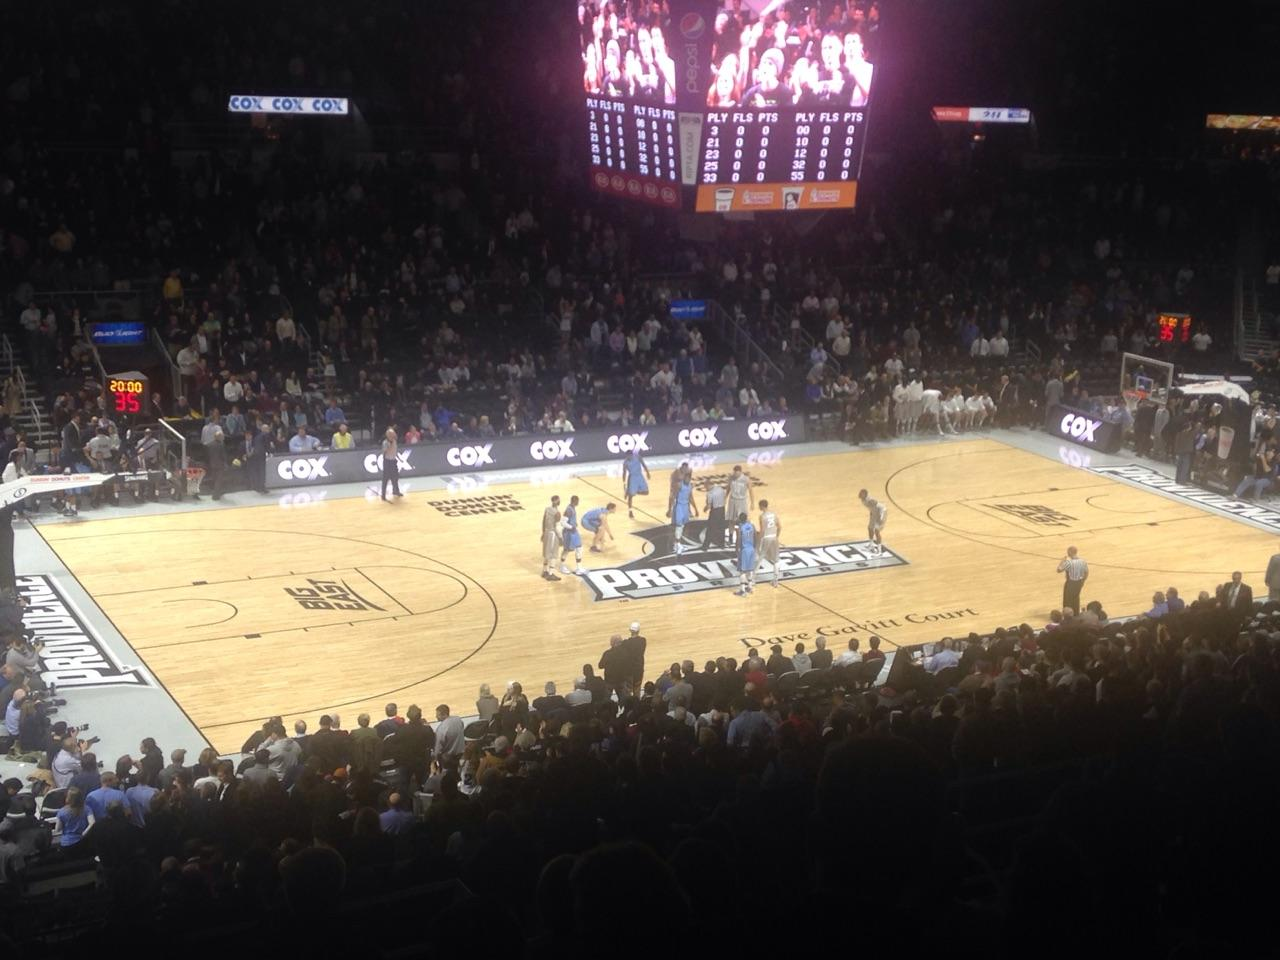 Dunkin' Donuts Center Section 214 Row M Seat 1